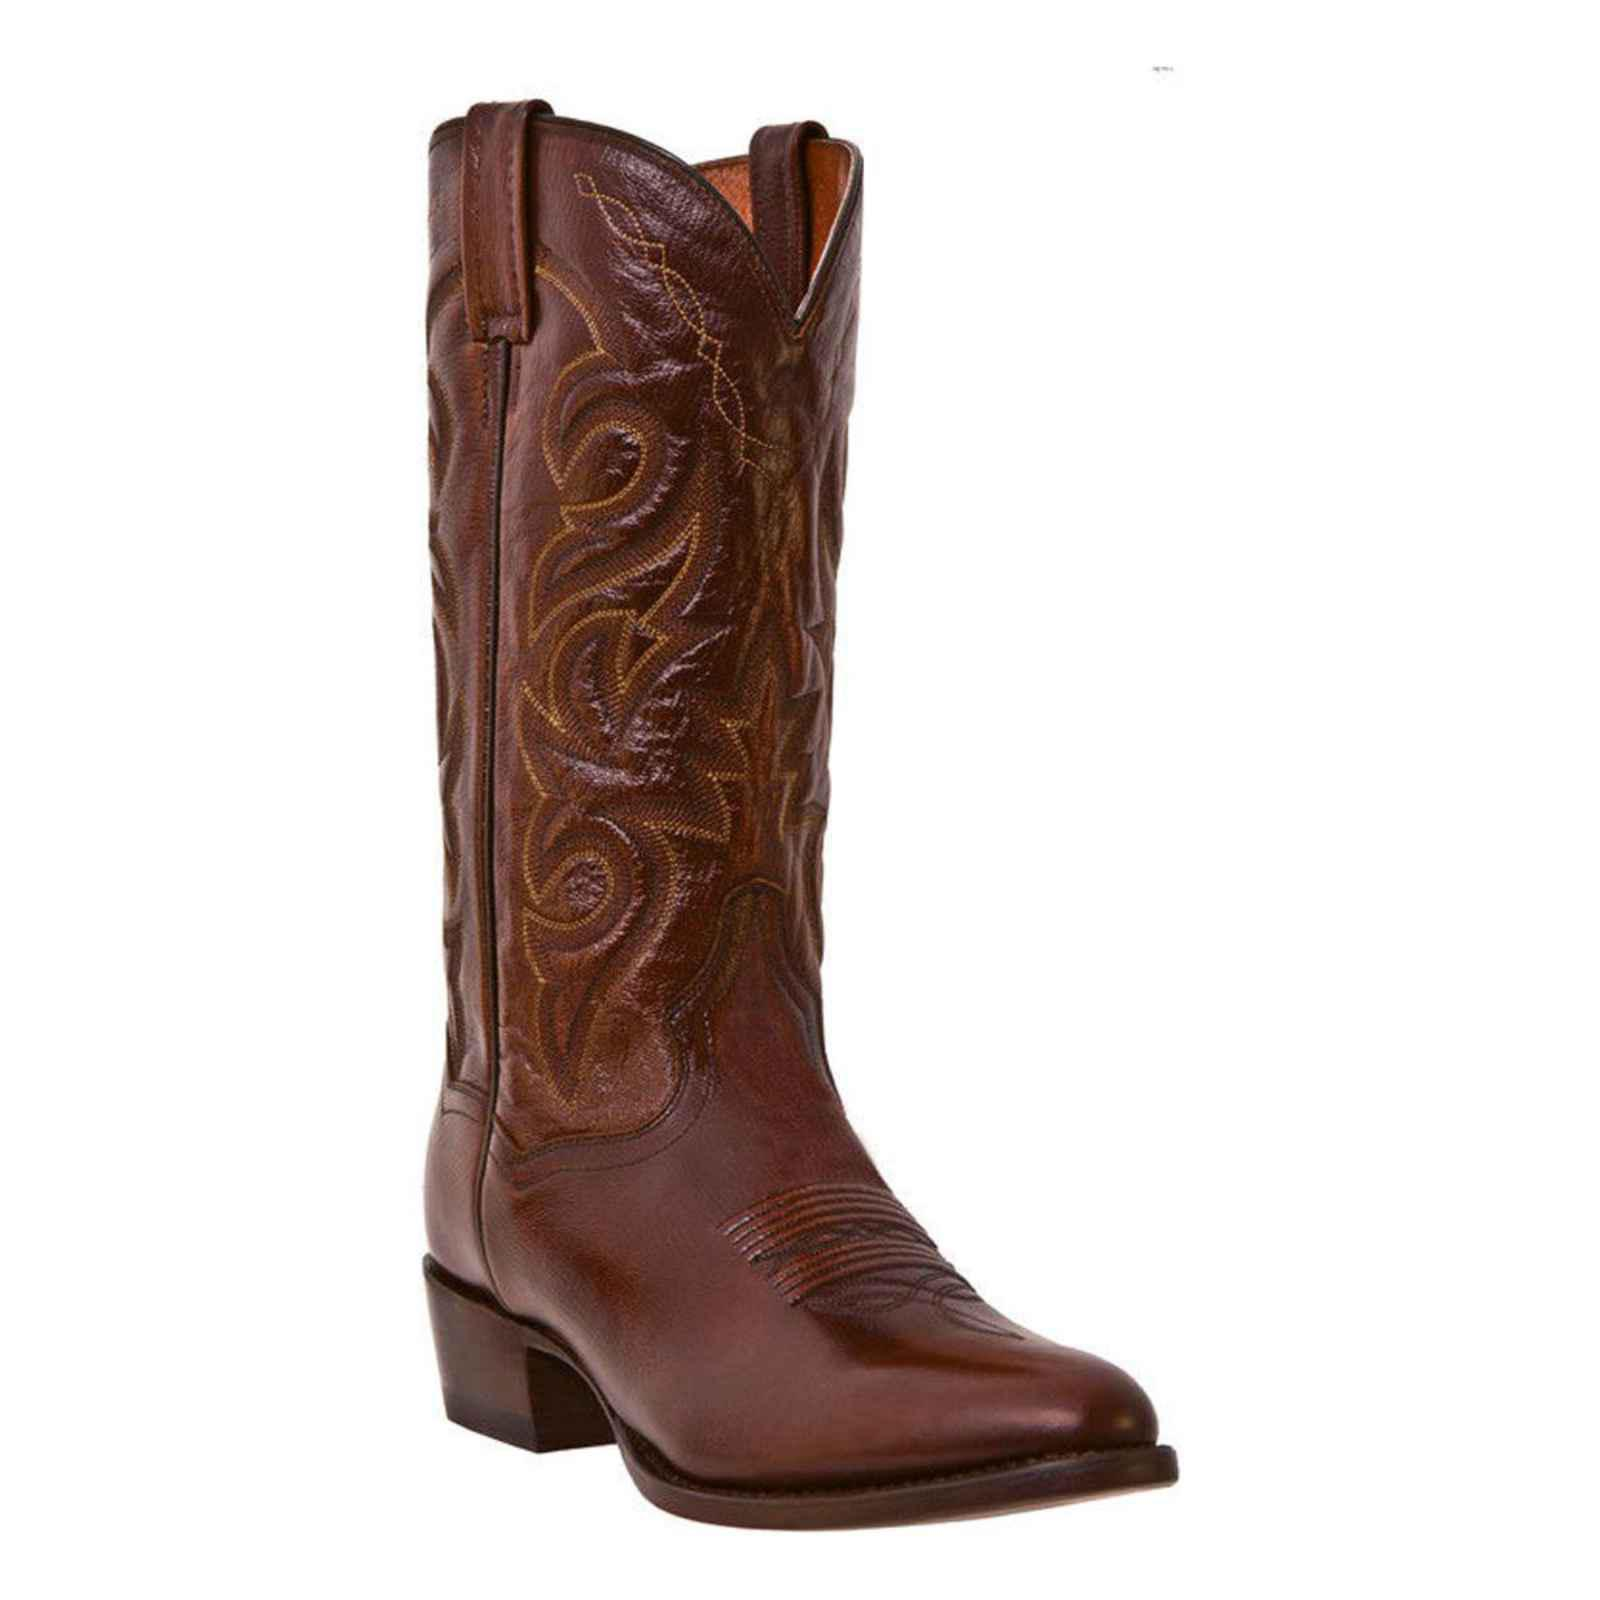 Dan Post DP2111R Men's Antique Tan Milwaukee R Toe Western Boots by Dan Post Boots